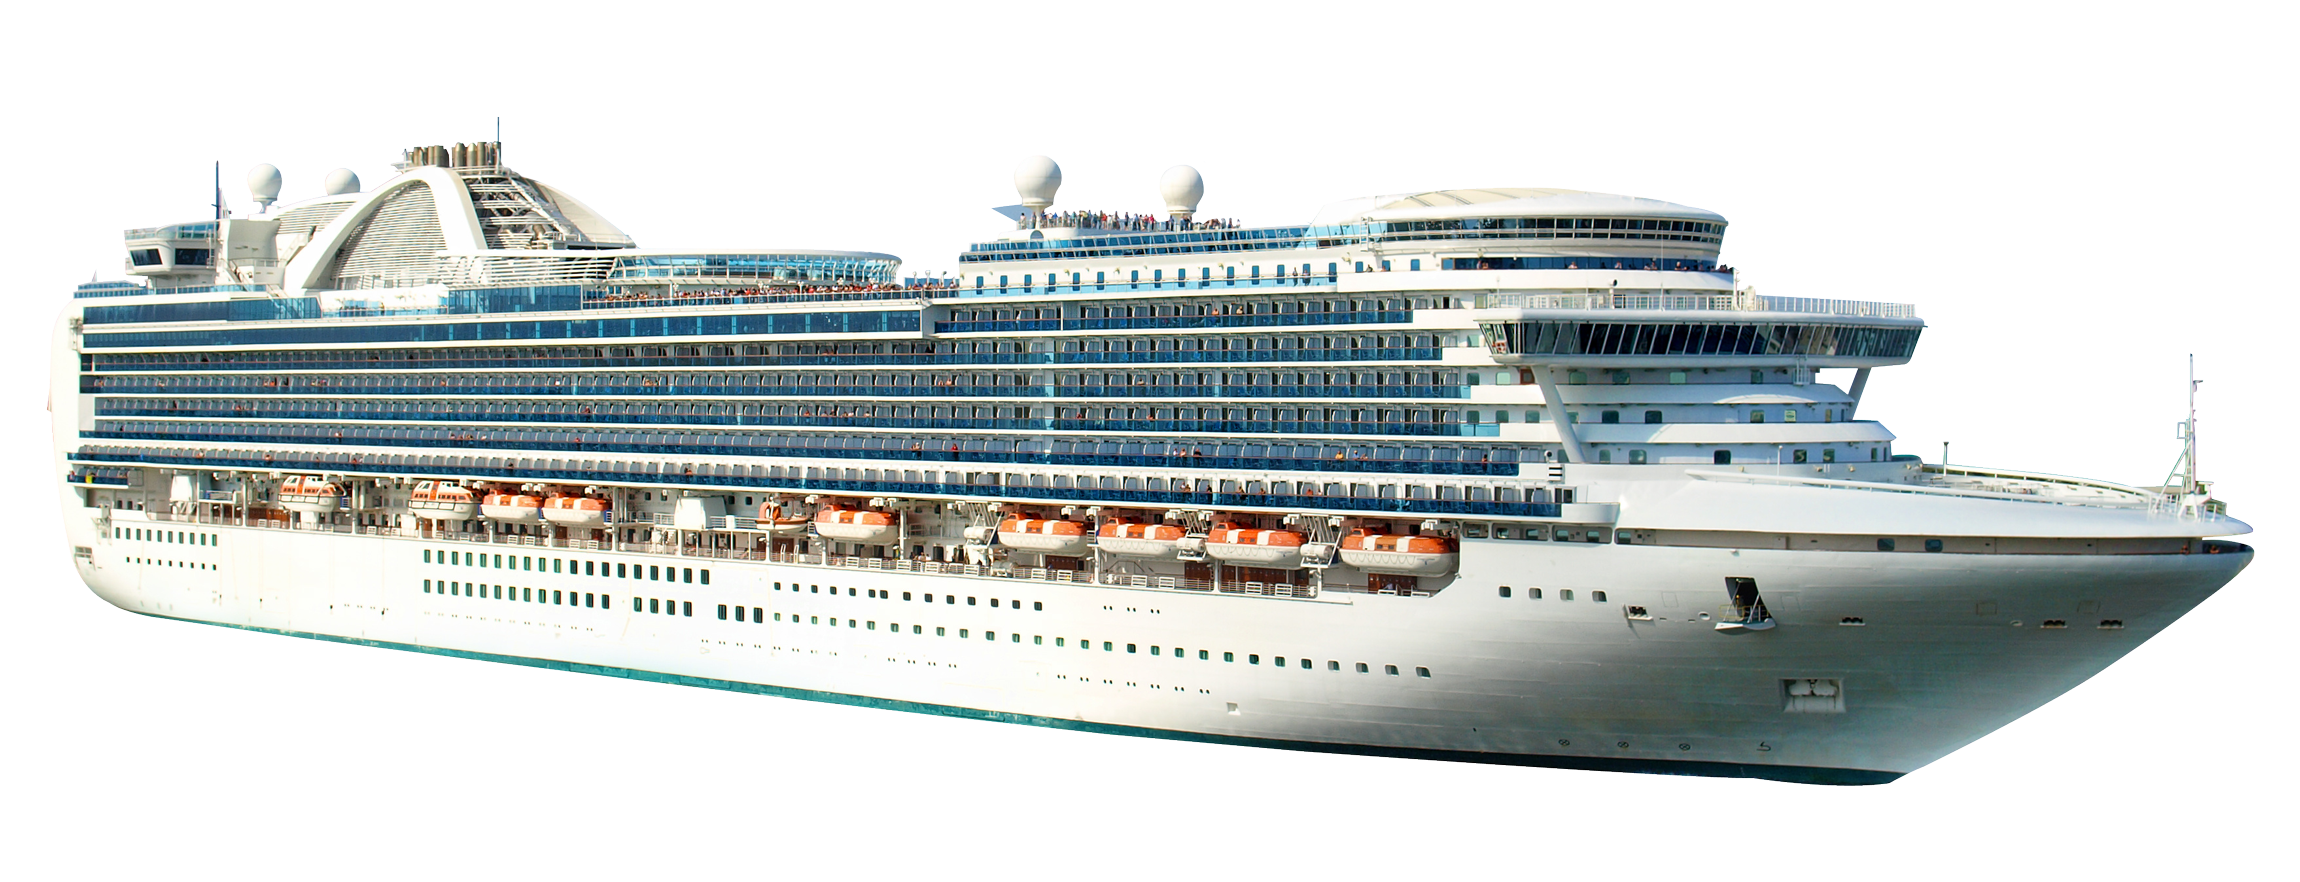 Cruise Ship Png Free Download - Cruise Ship, Transparent background PNG HD thumbnail